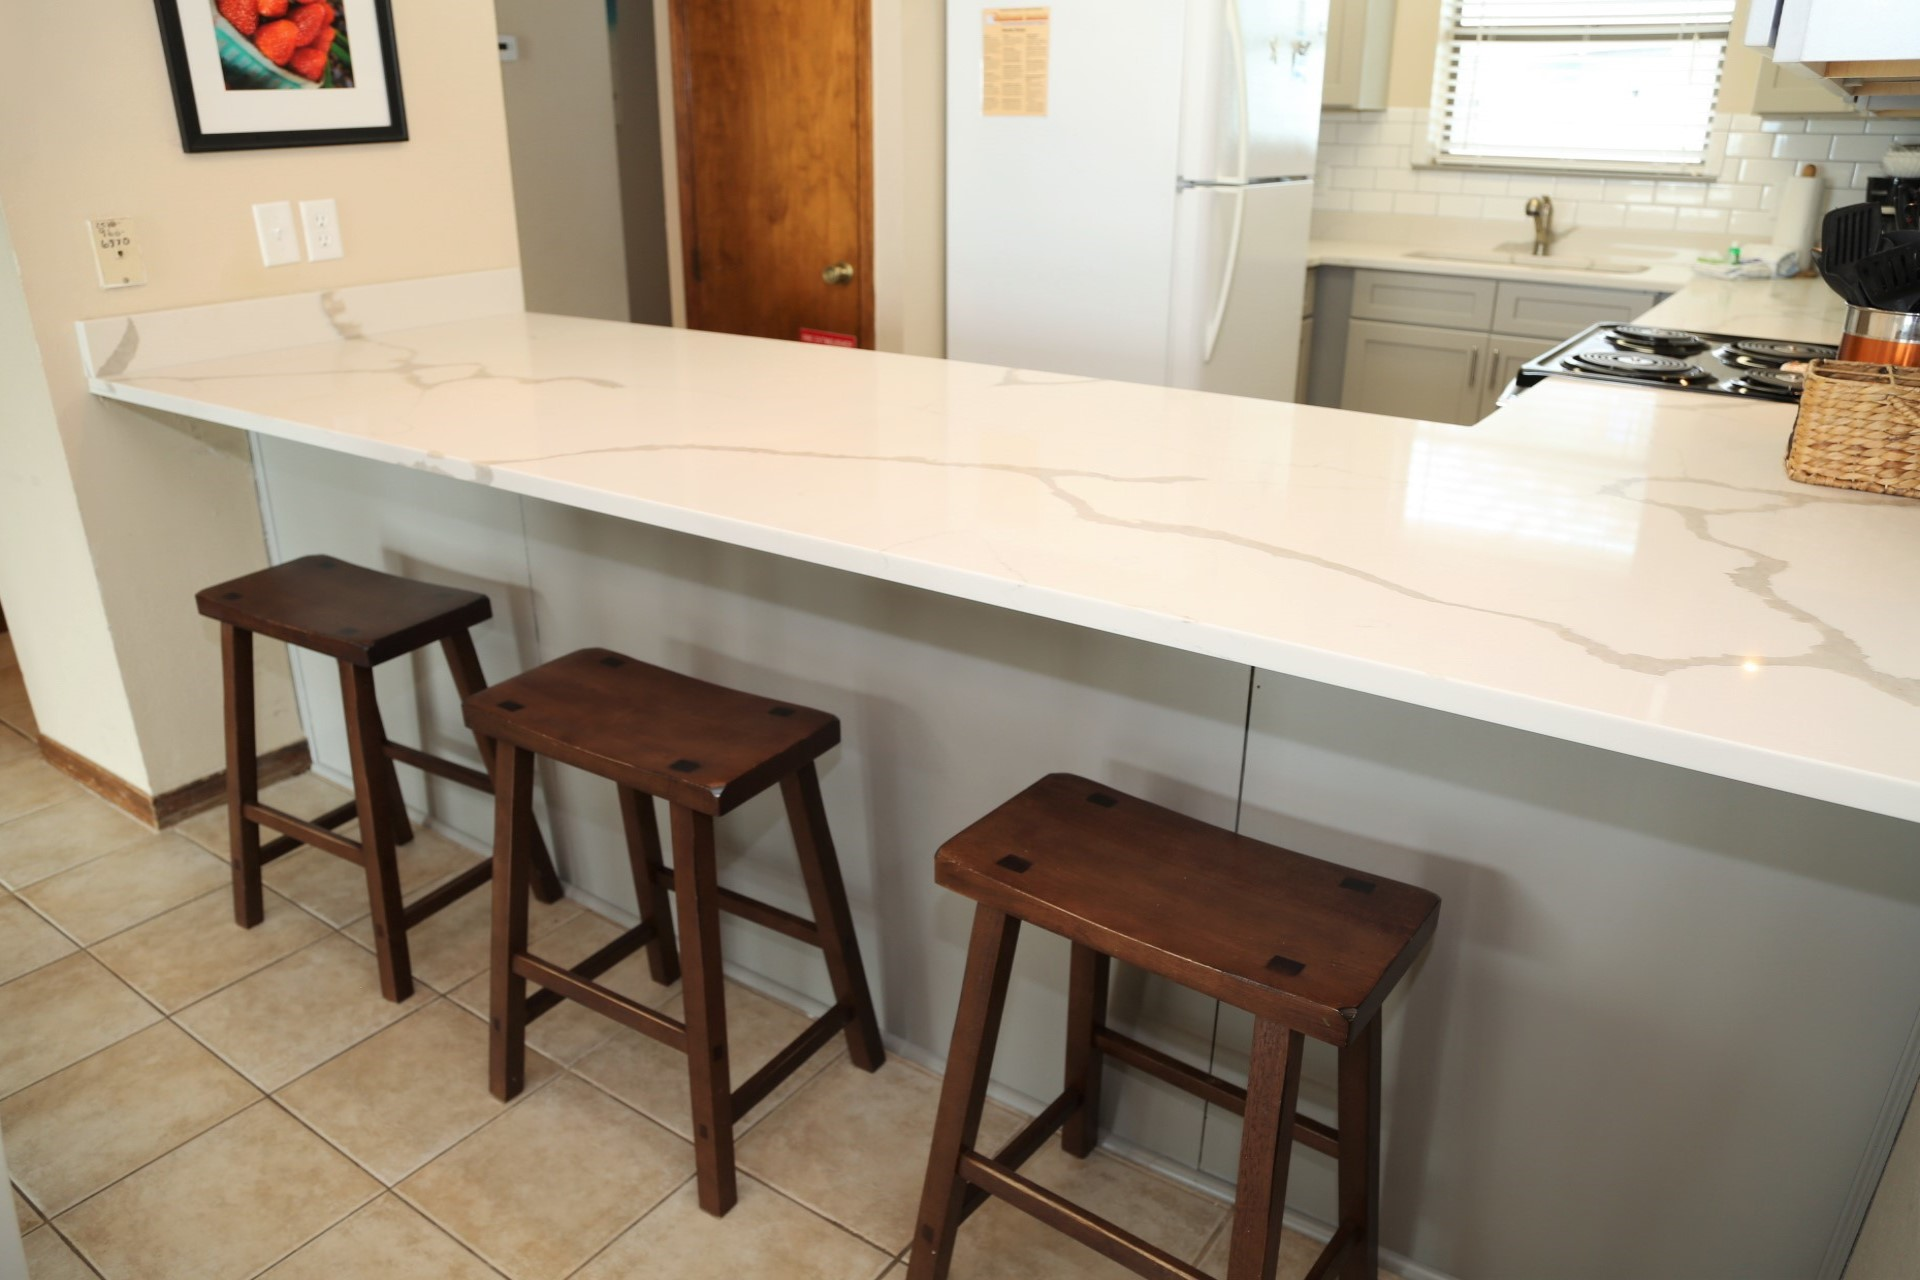 Bar seating in the dining area.